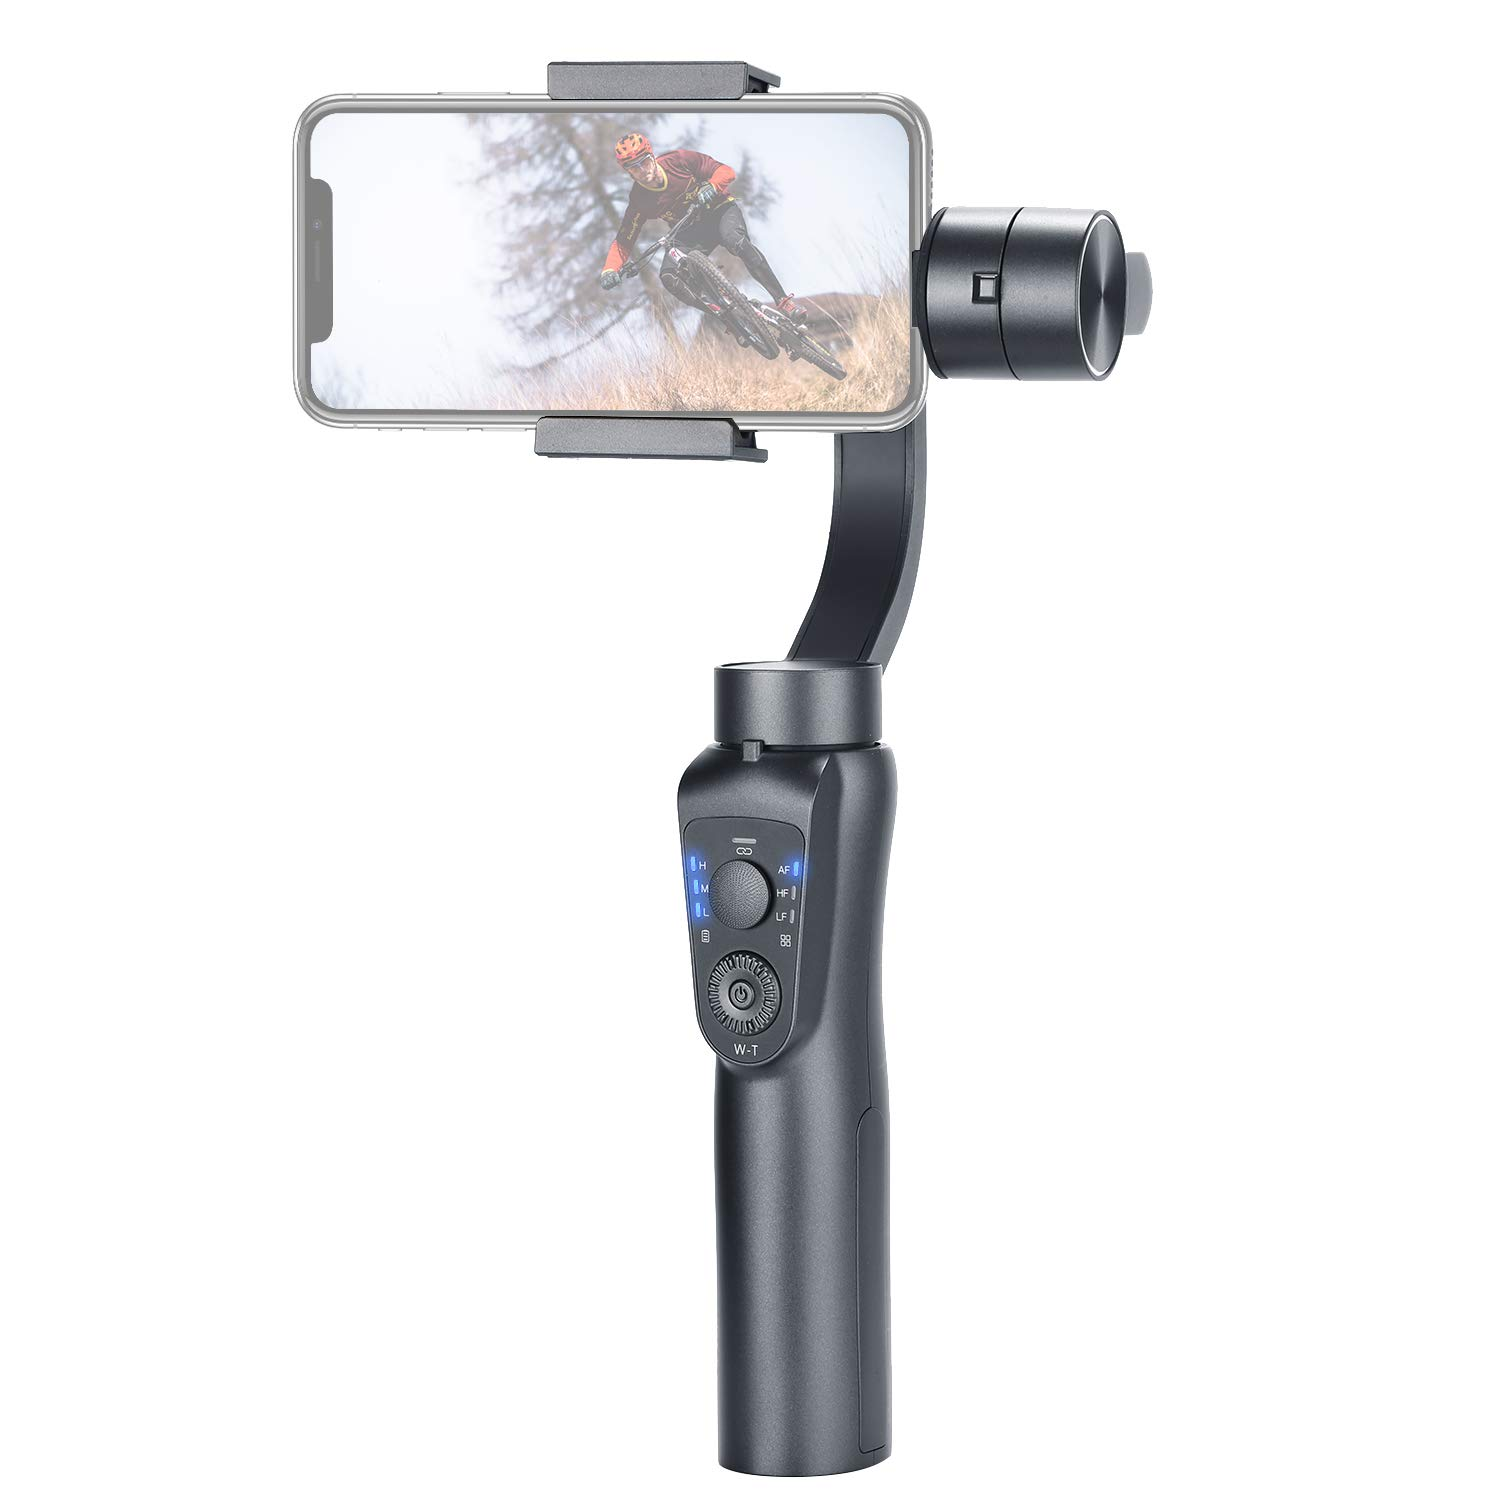 Neewer Gimbal 3-Axis Handheld Stabilizer with Zoom Control Auto Tracking 2 USB Charging Ways for iPhoneXs Max Xr X 8 Plus 8 7 6, Smartphone Samsung Galaxy S9+ S9 S8+ S8 S7 Huawei by Neewer